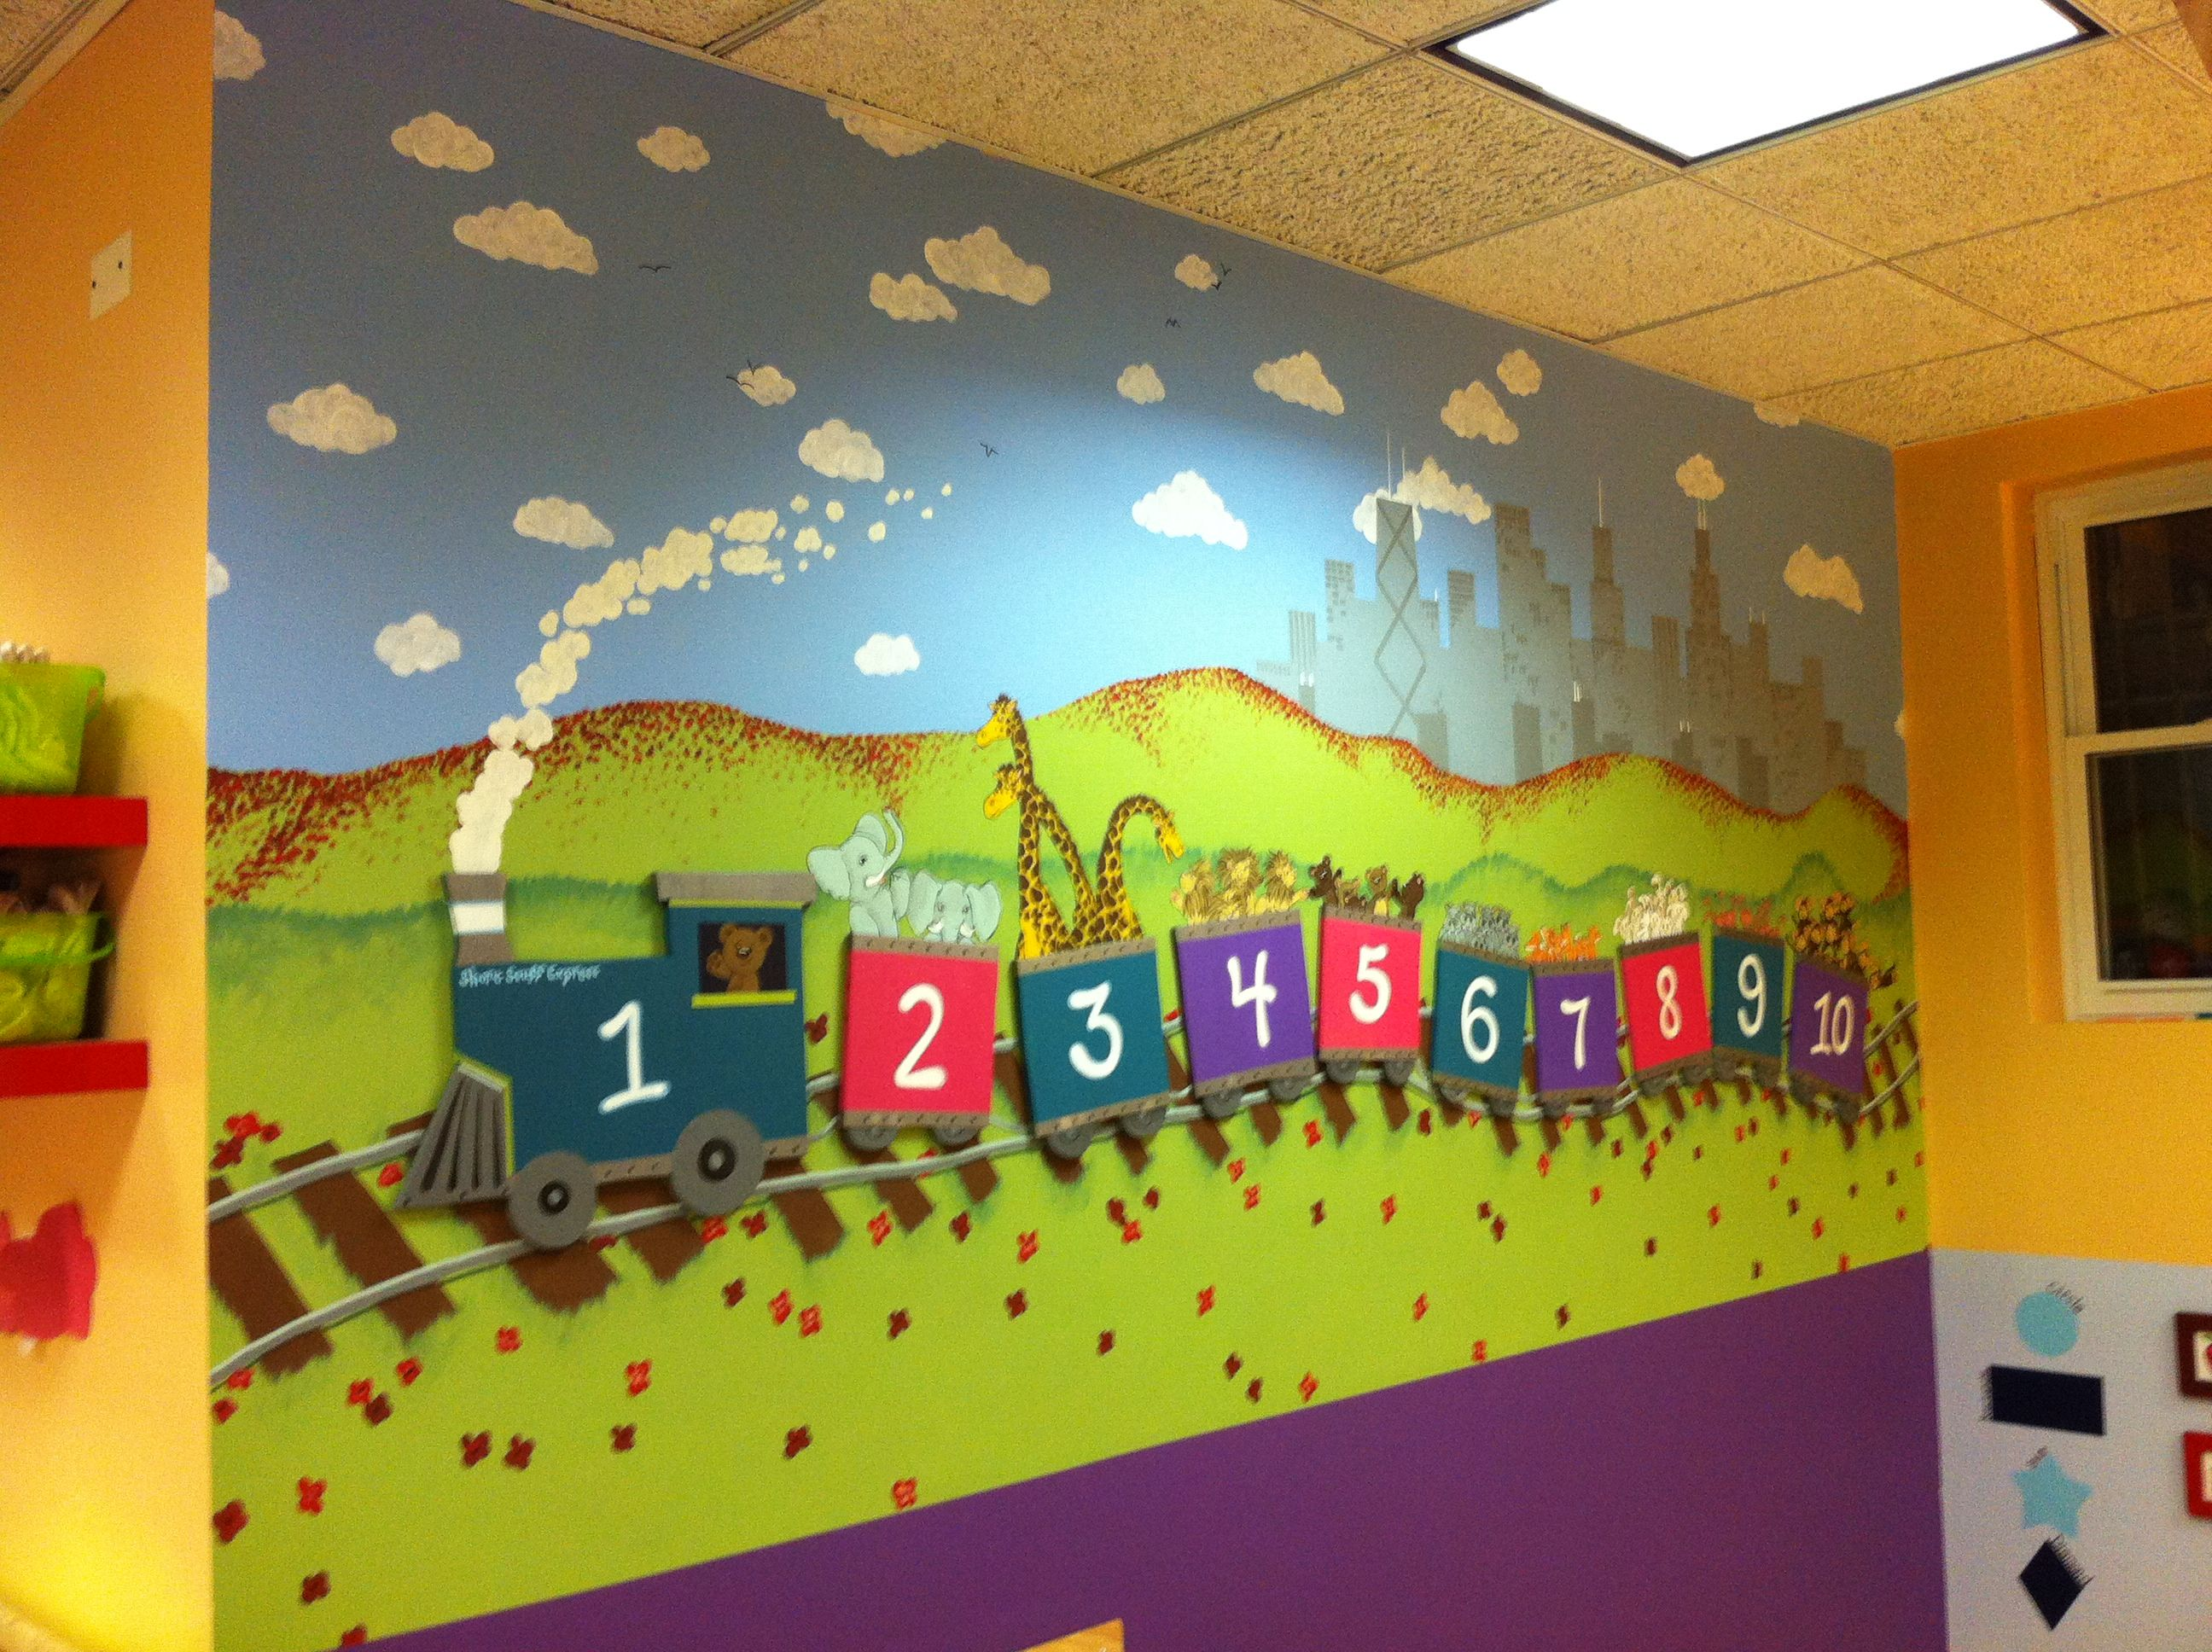 This is the numbers mural at an early education for Art room mural ideas